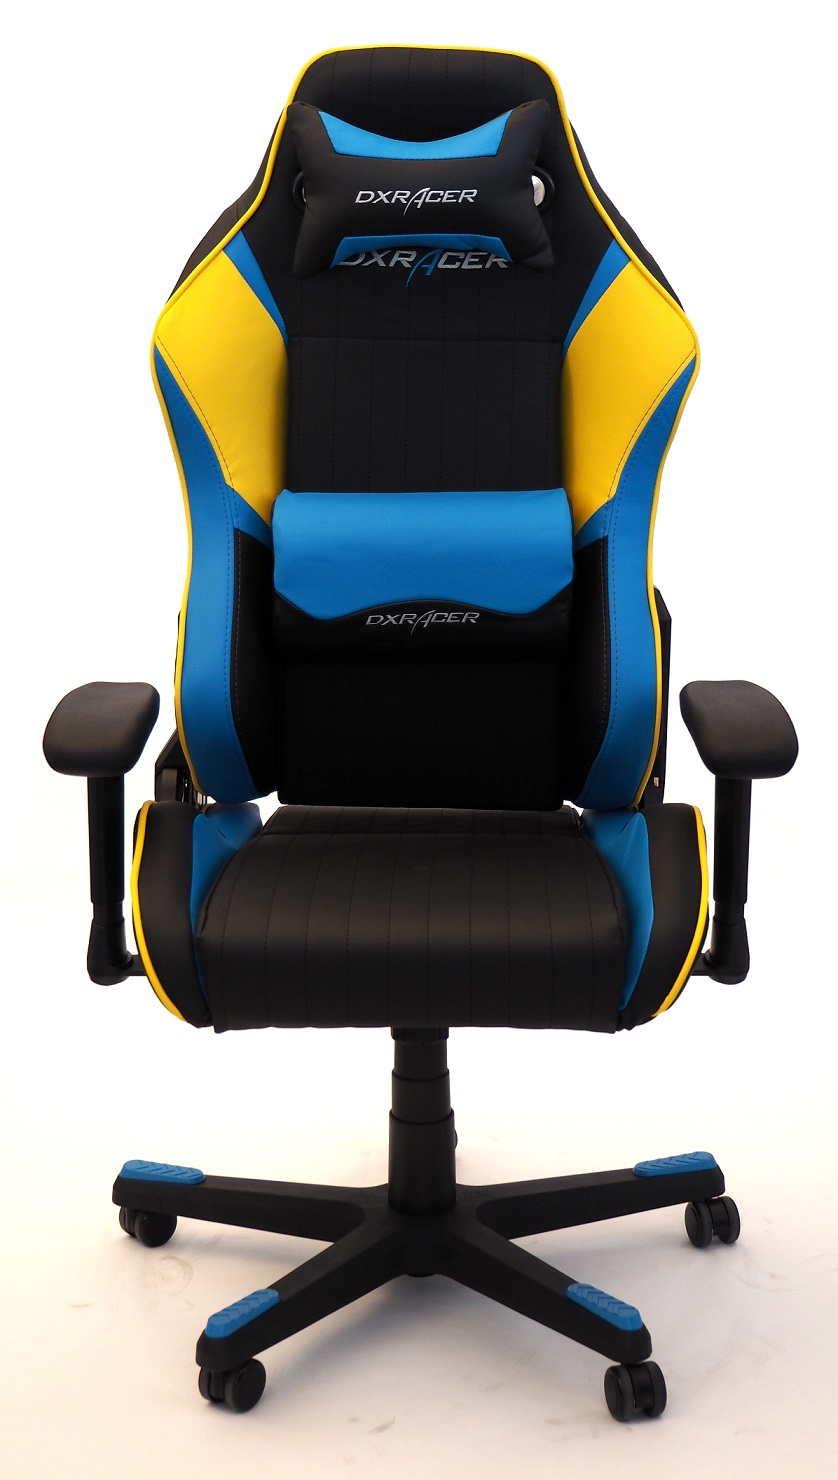 židle DXRACER OH/DE35/NYB gallery main image